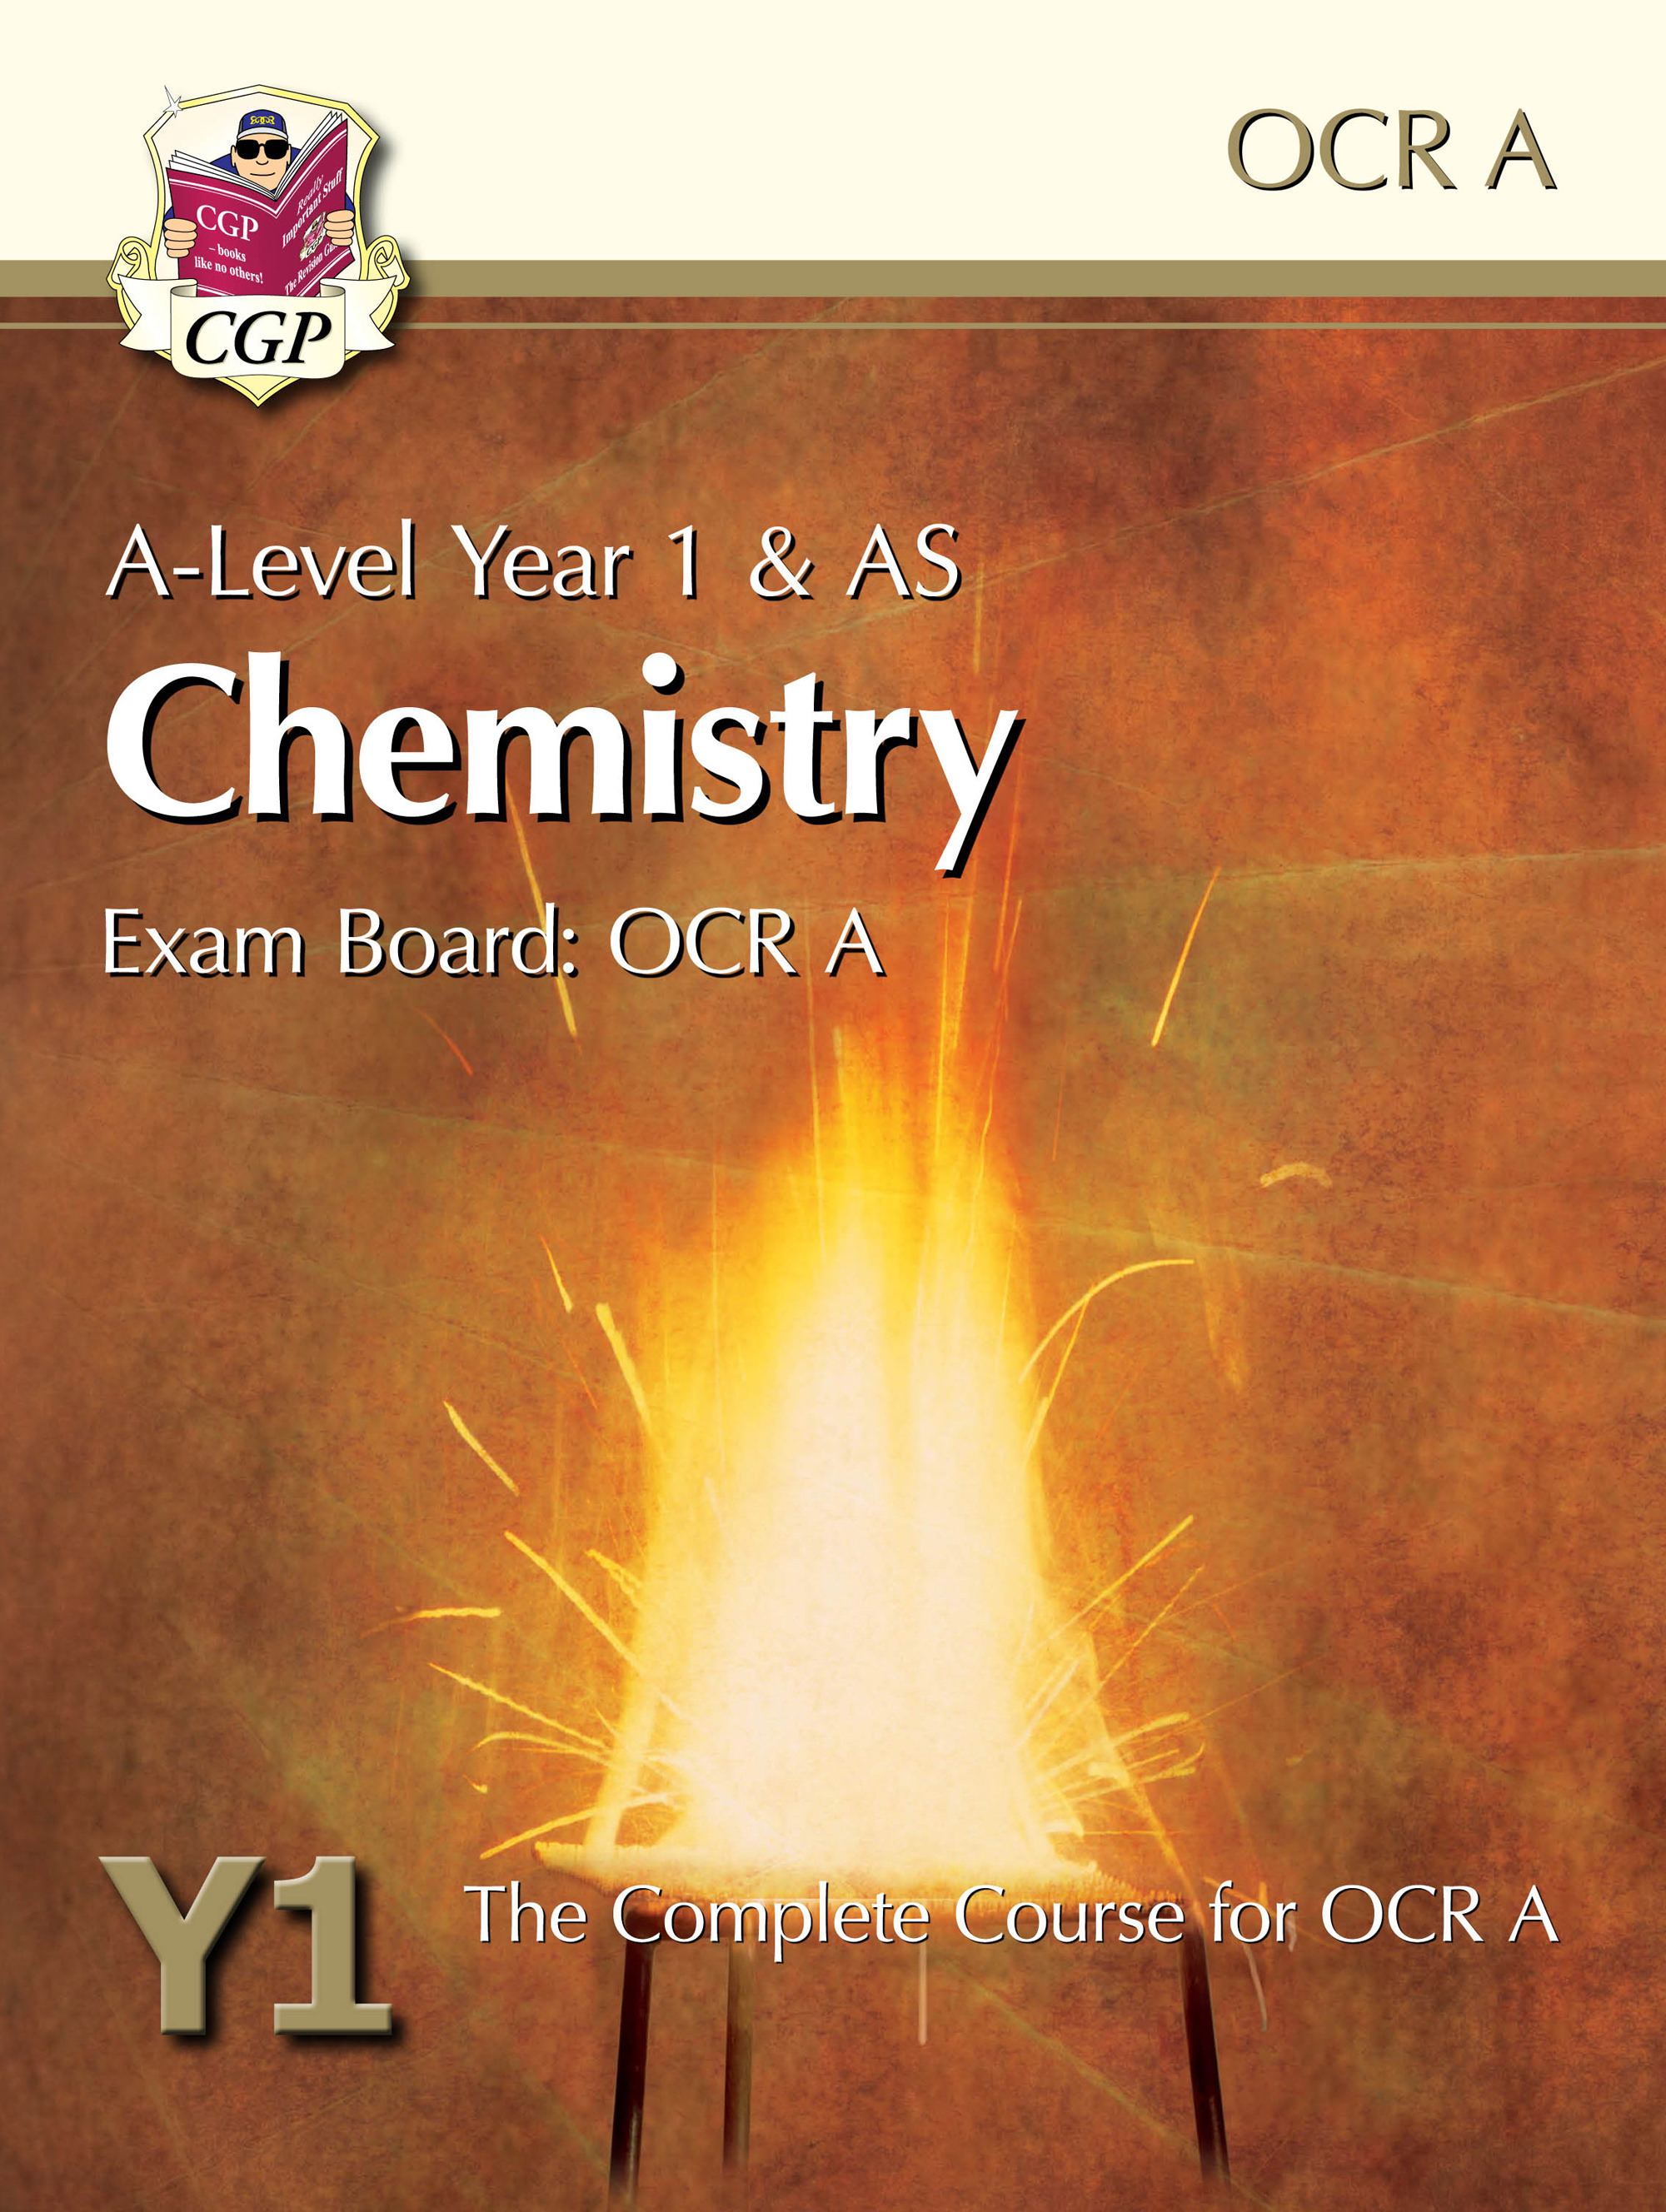 CRATB52DK - A-Level Chemistry for OCR A: Year 1 & AS Student Book